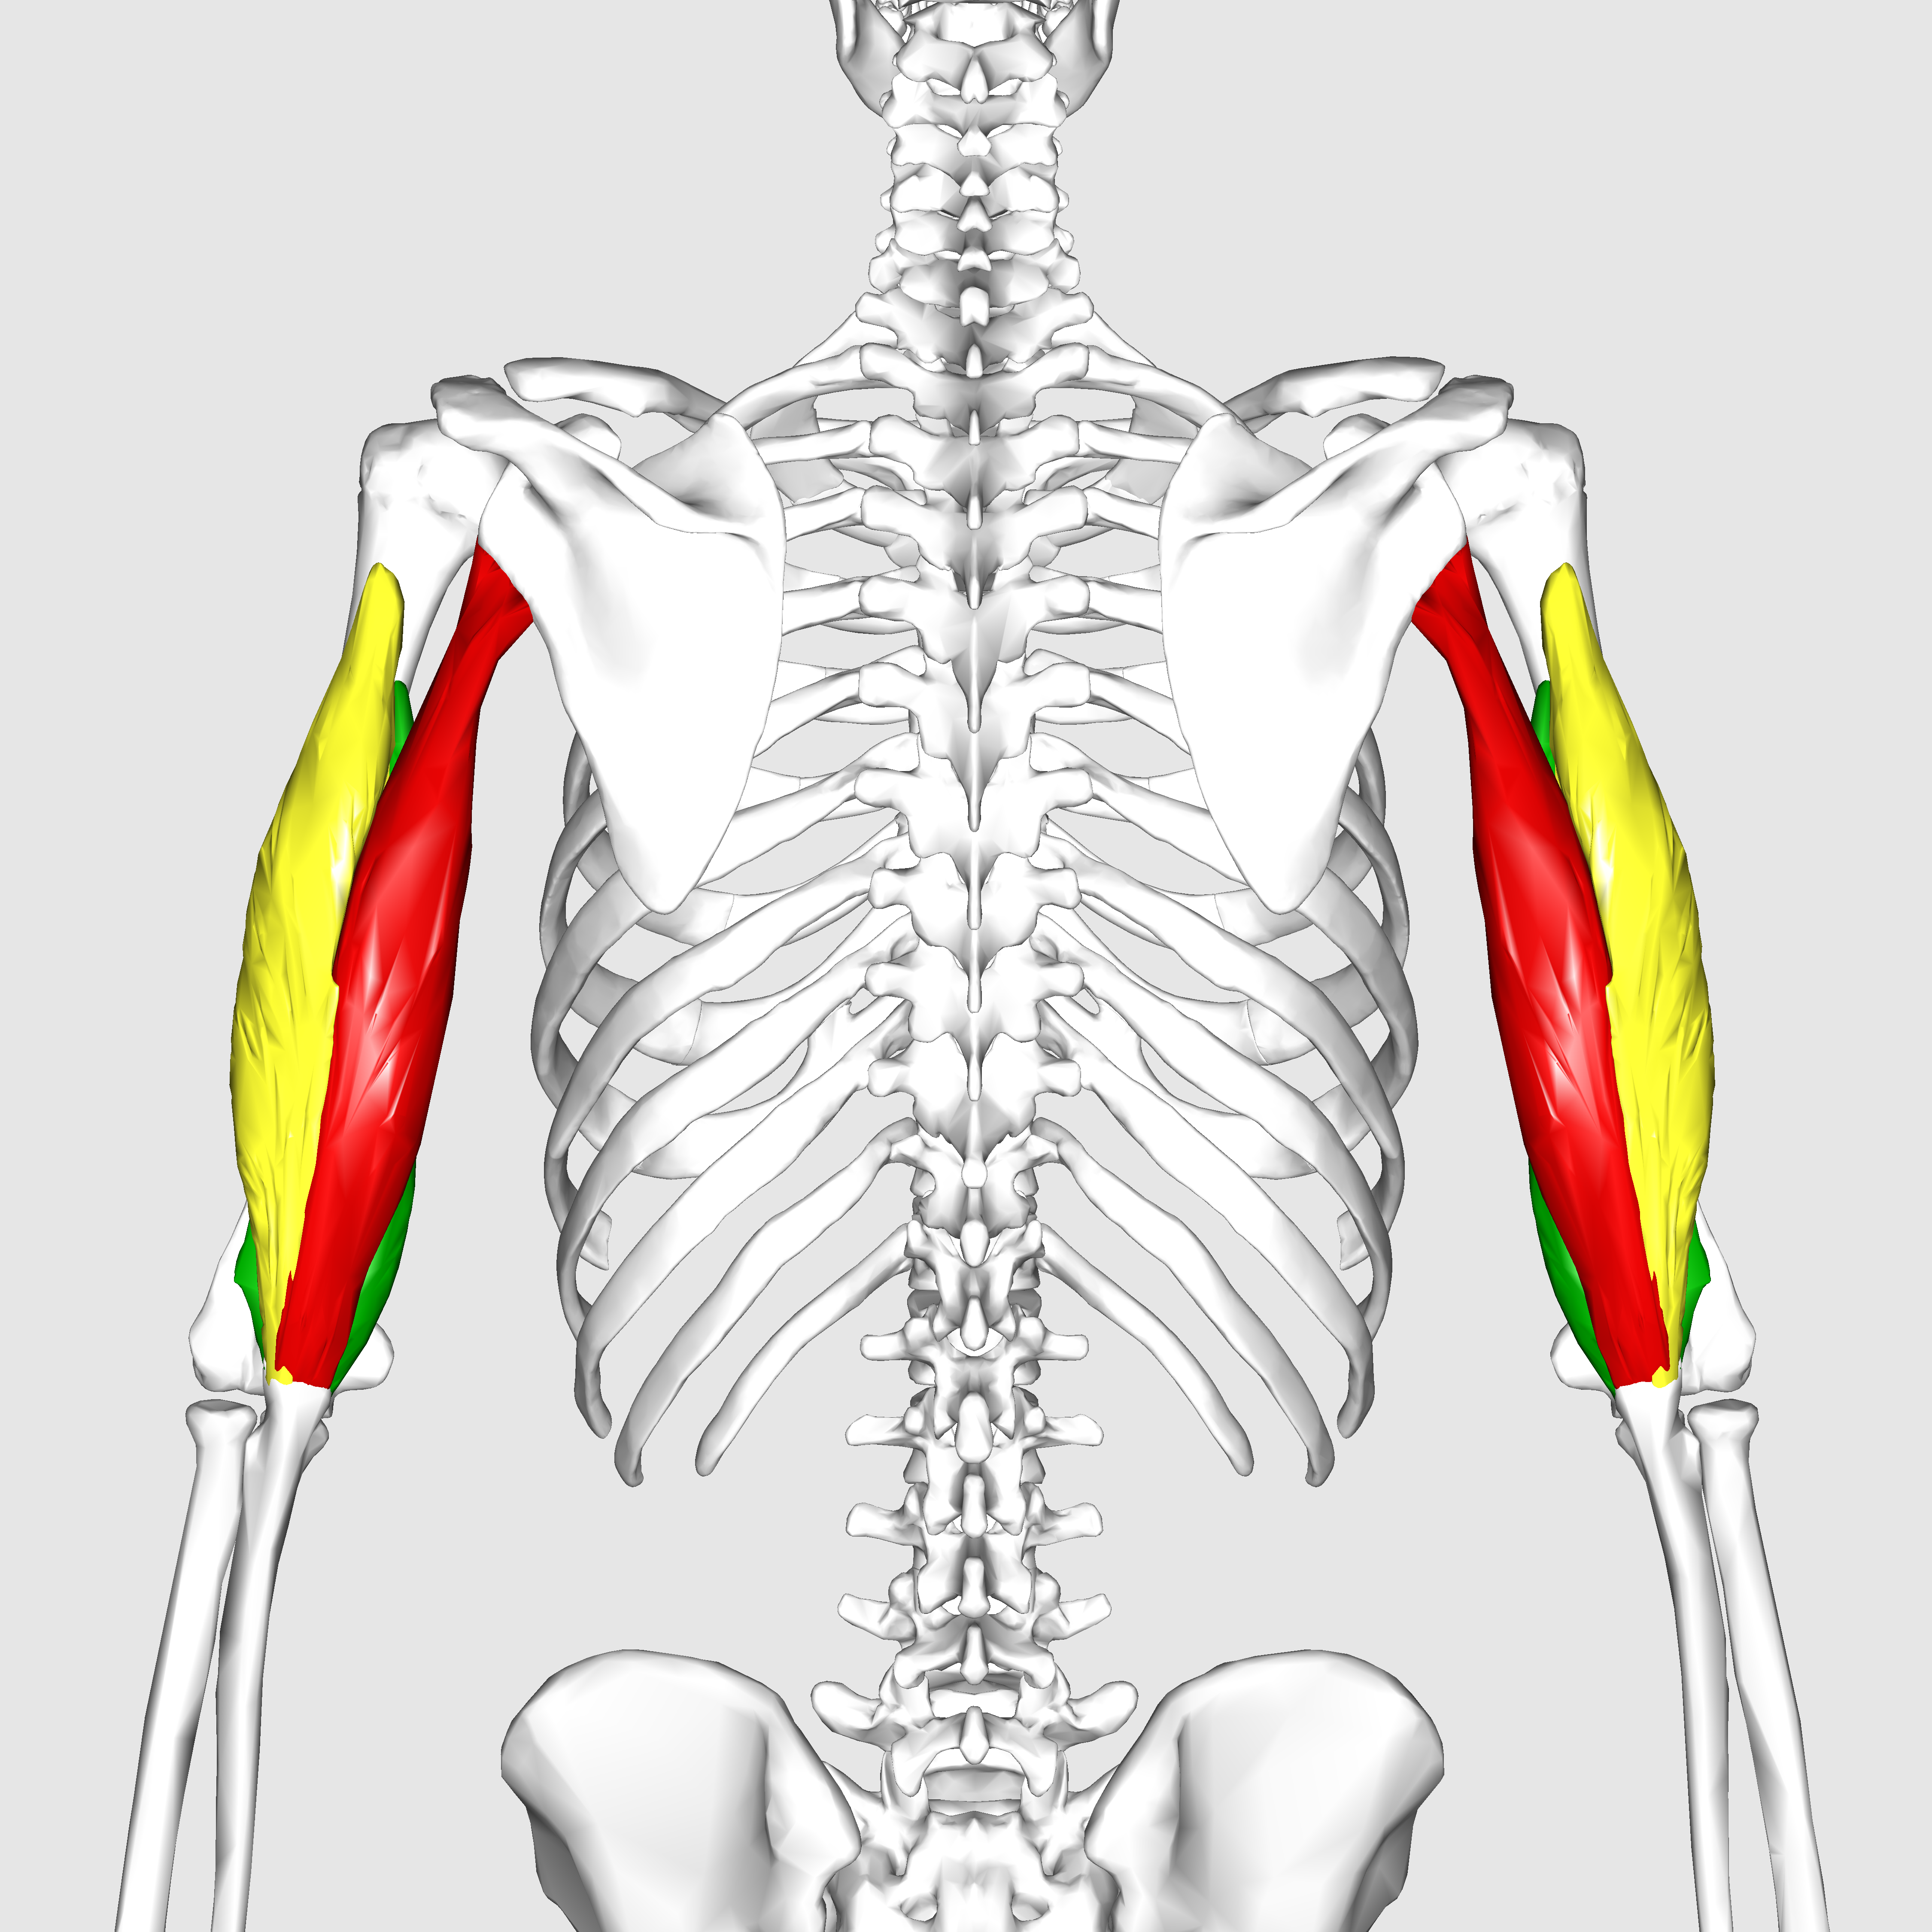 File:Triceps brachii muscle06.png - Wikimedia Commons